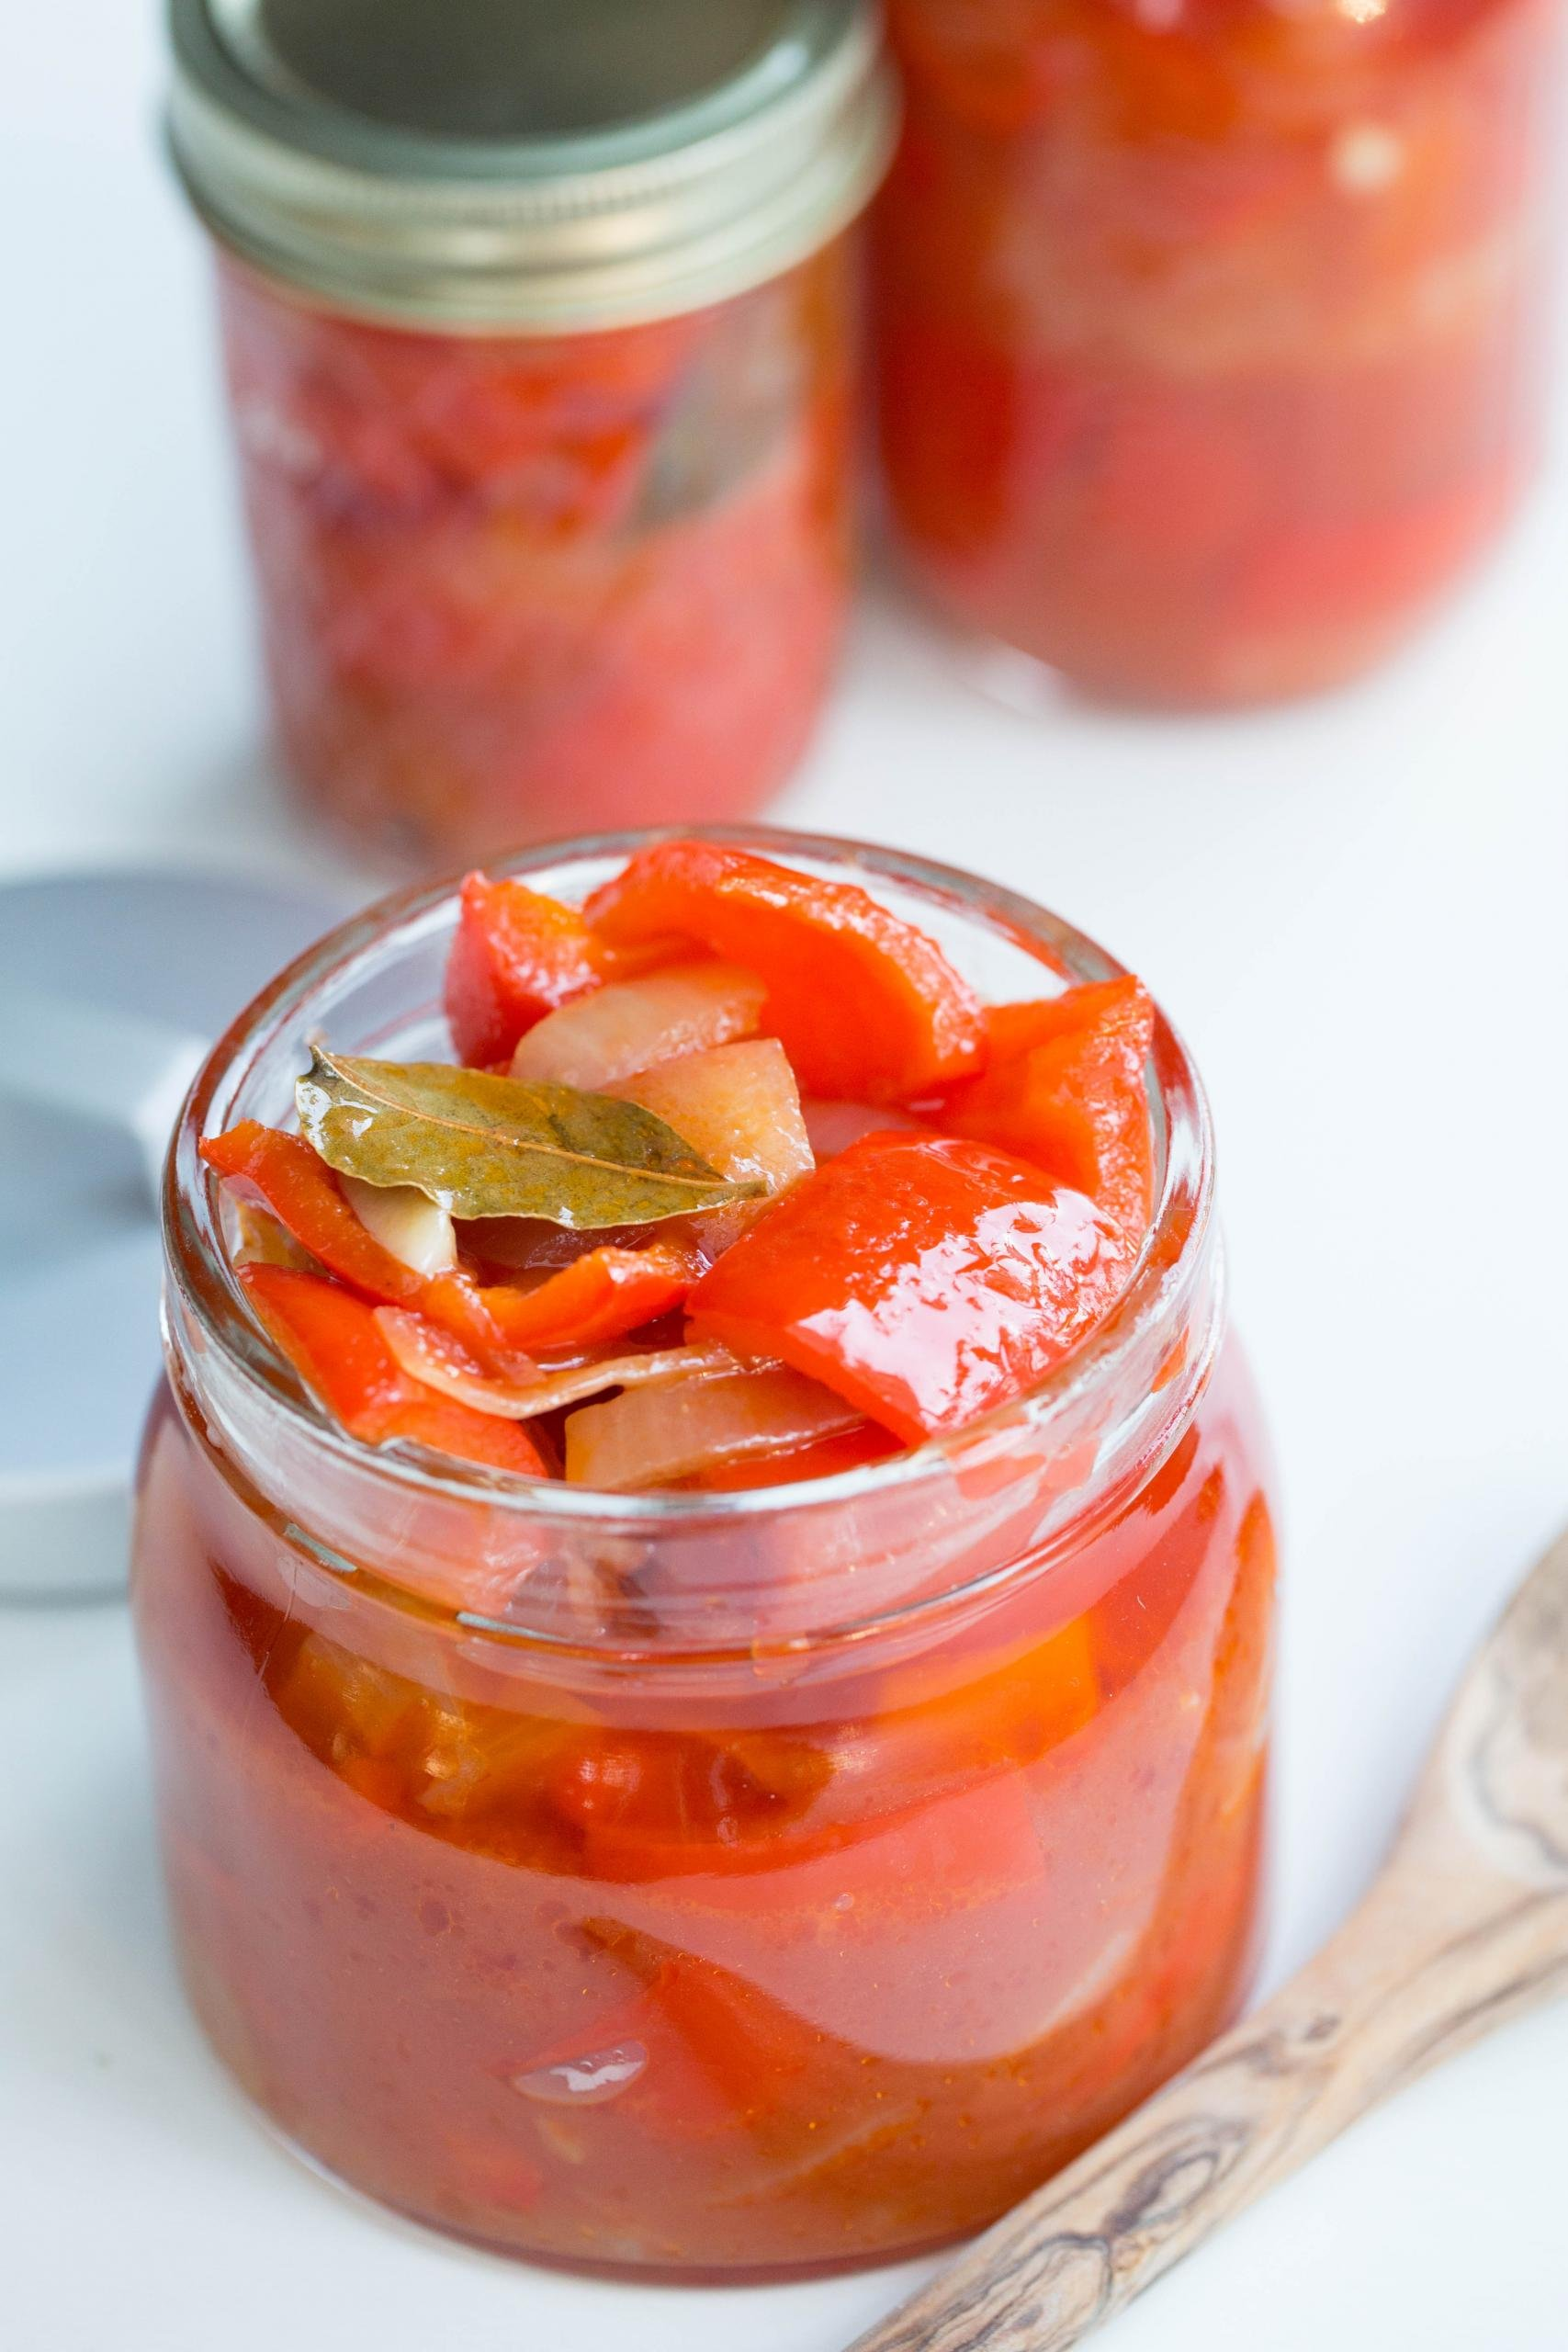 An open jar of marinated red bell peppers